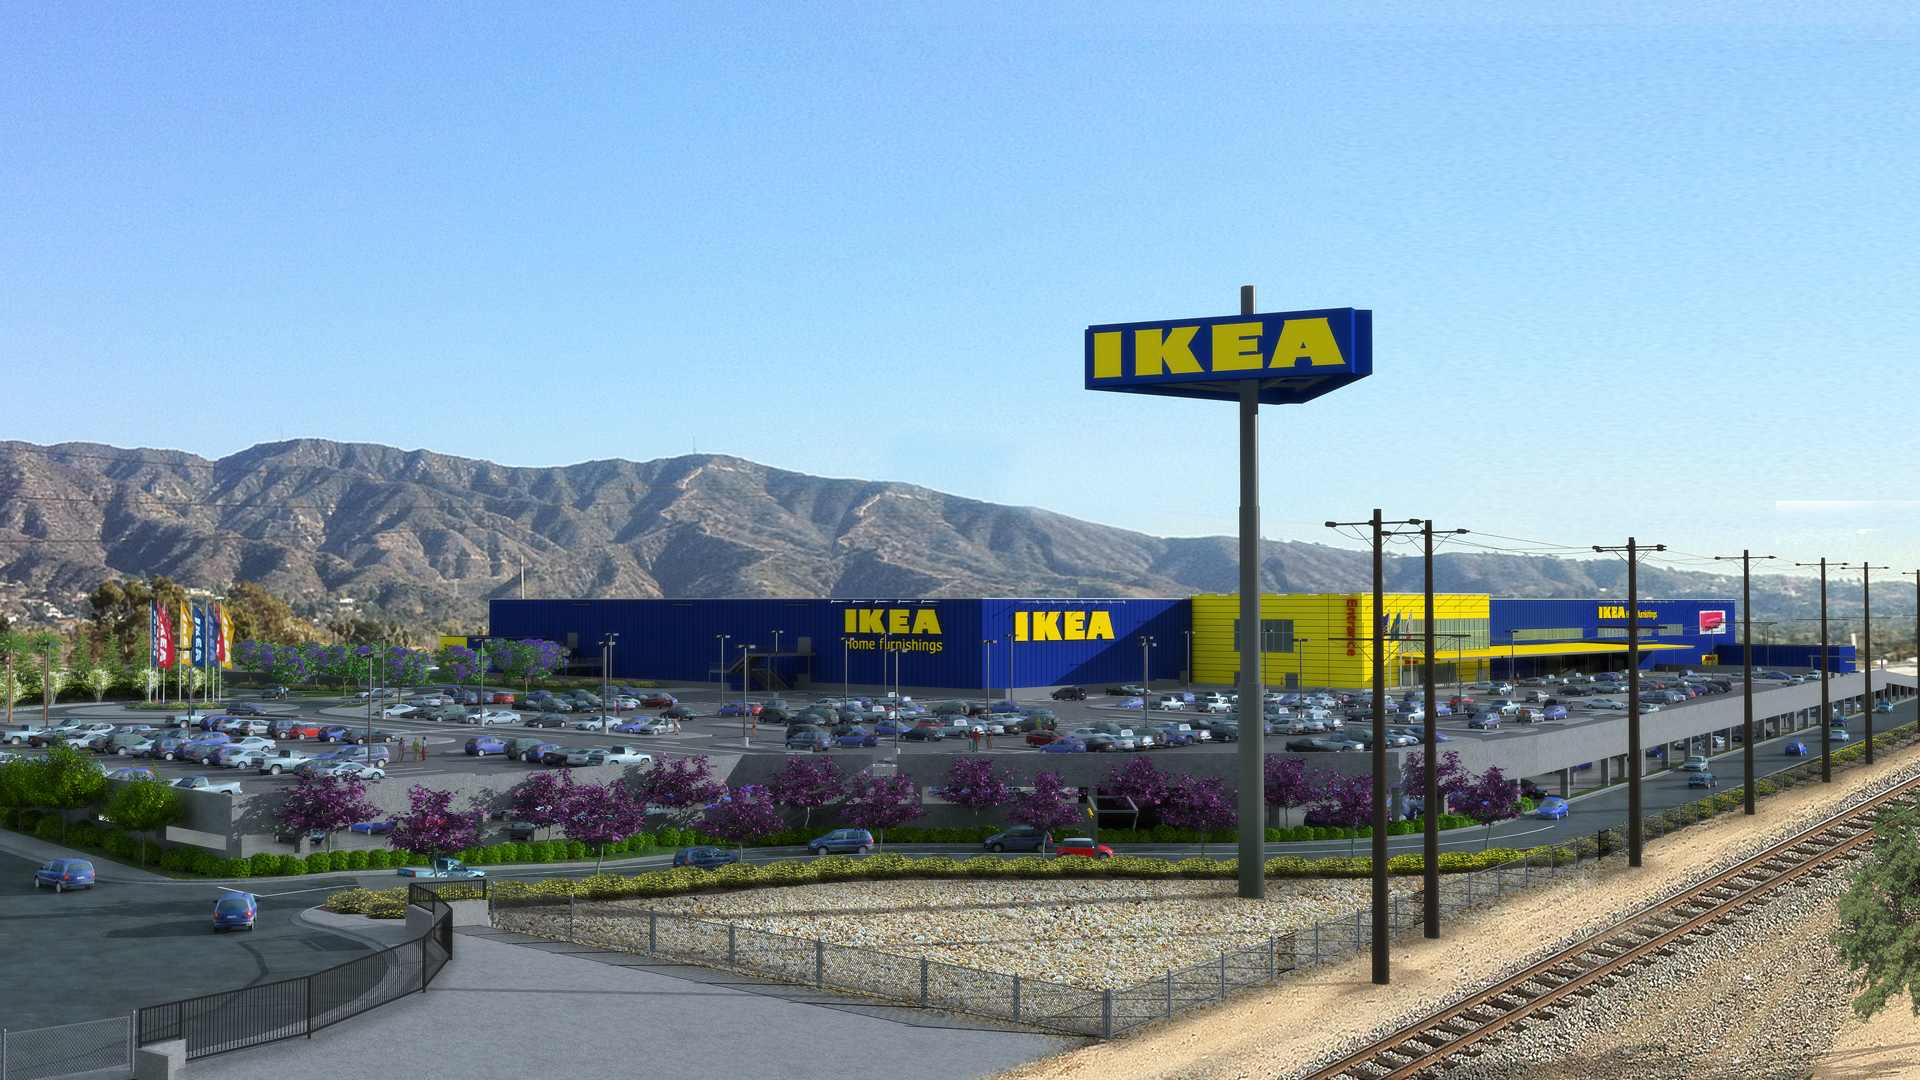 Ikea Secures Contractors For Development Of New Larger Store To